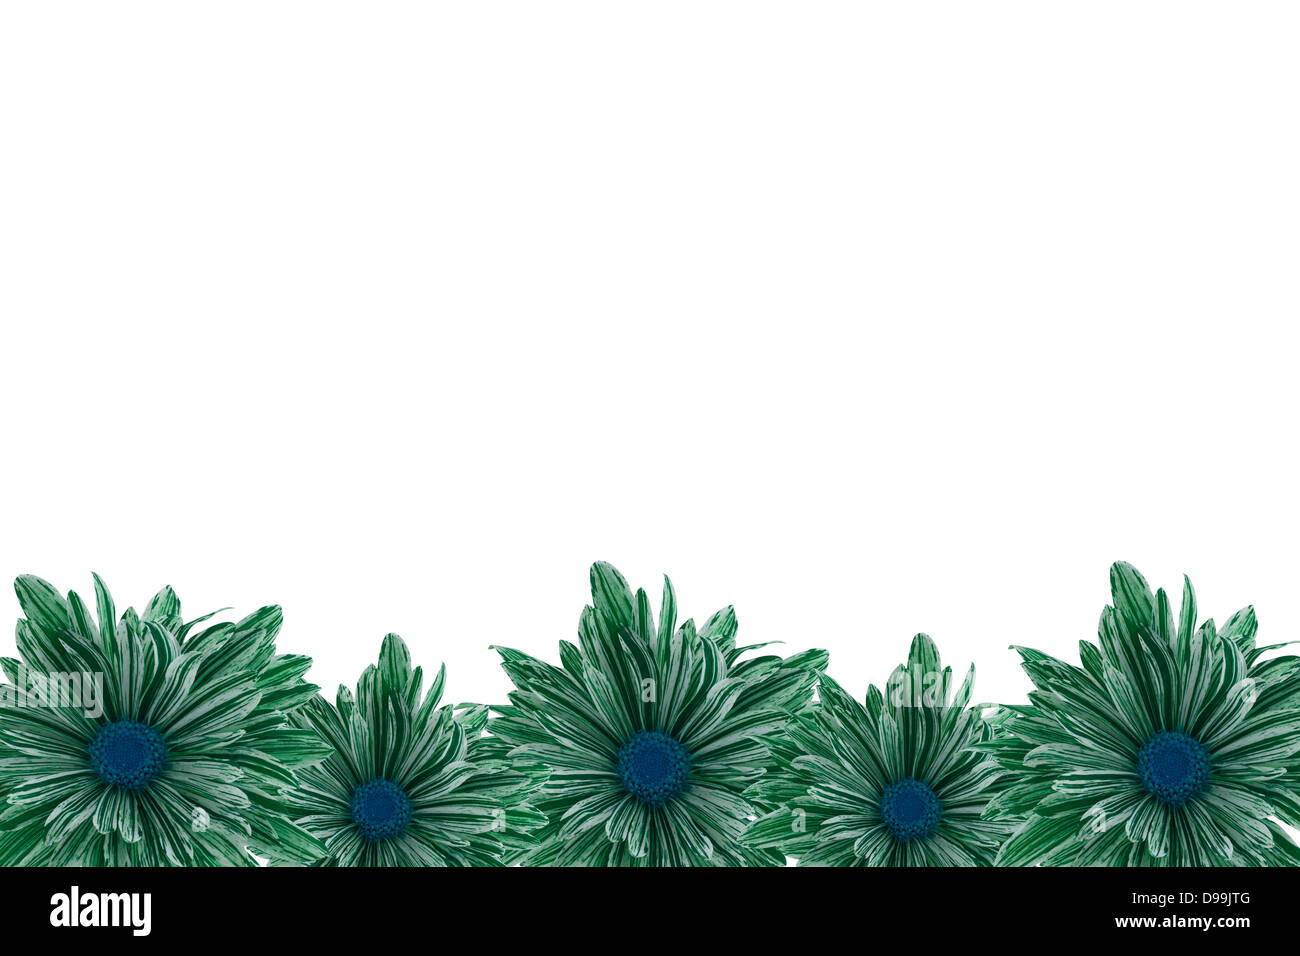 Green chrysanthemum border with a white background. - Stock Image